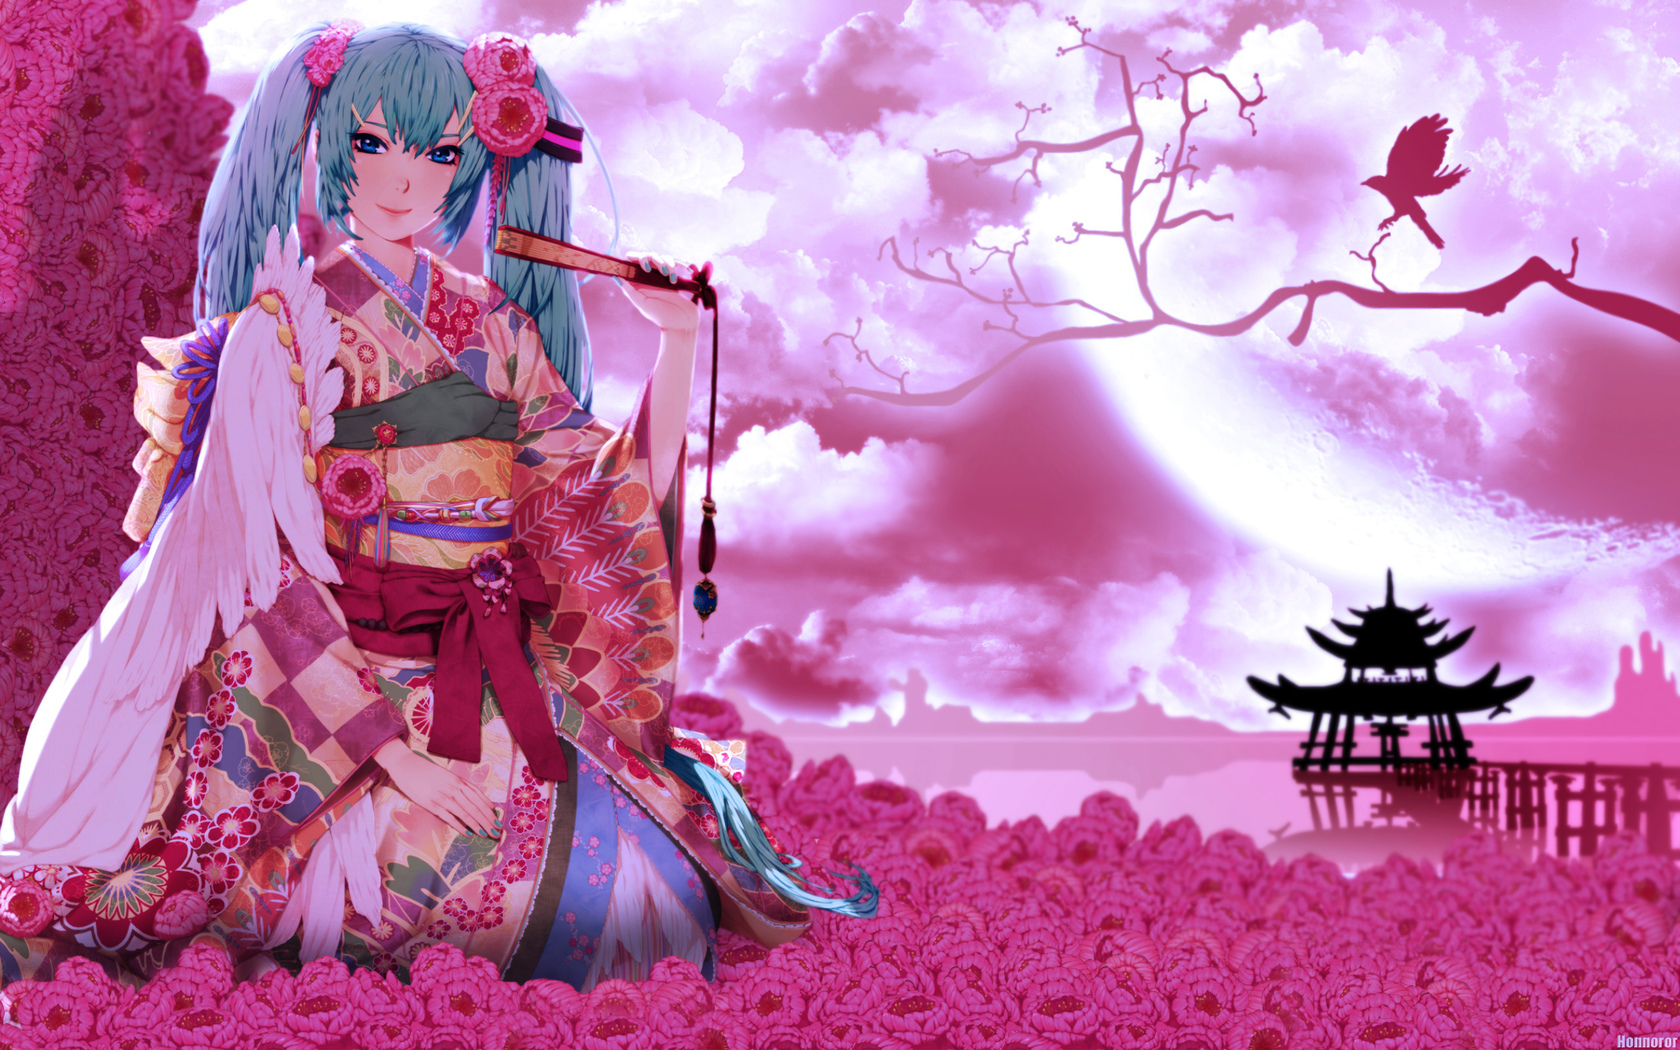 Anime   Vocaloid Oriental Pink Girl Anime Geisha Geisha Girl Wallpaper 1680x1050